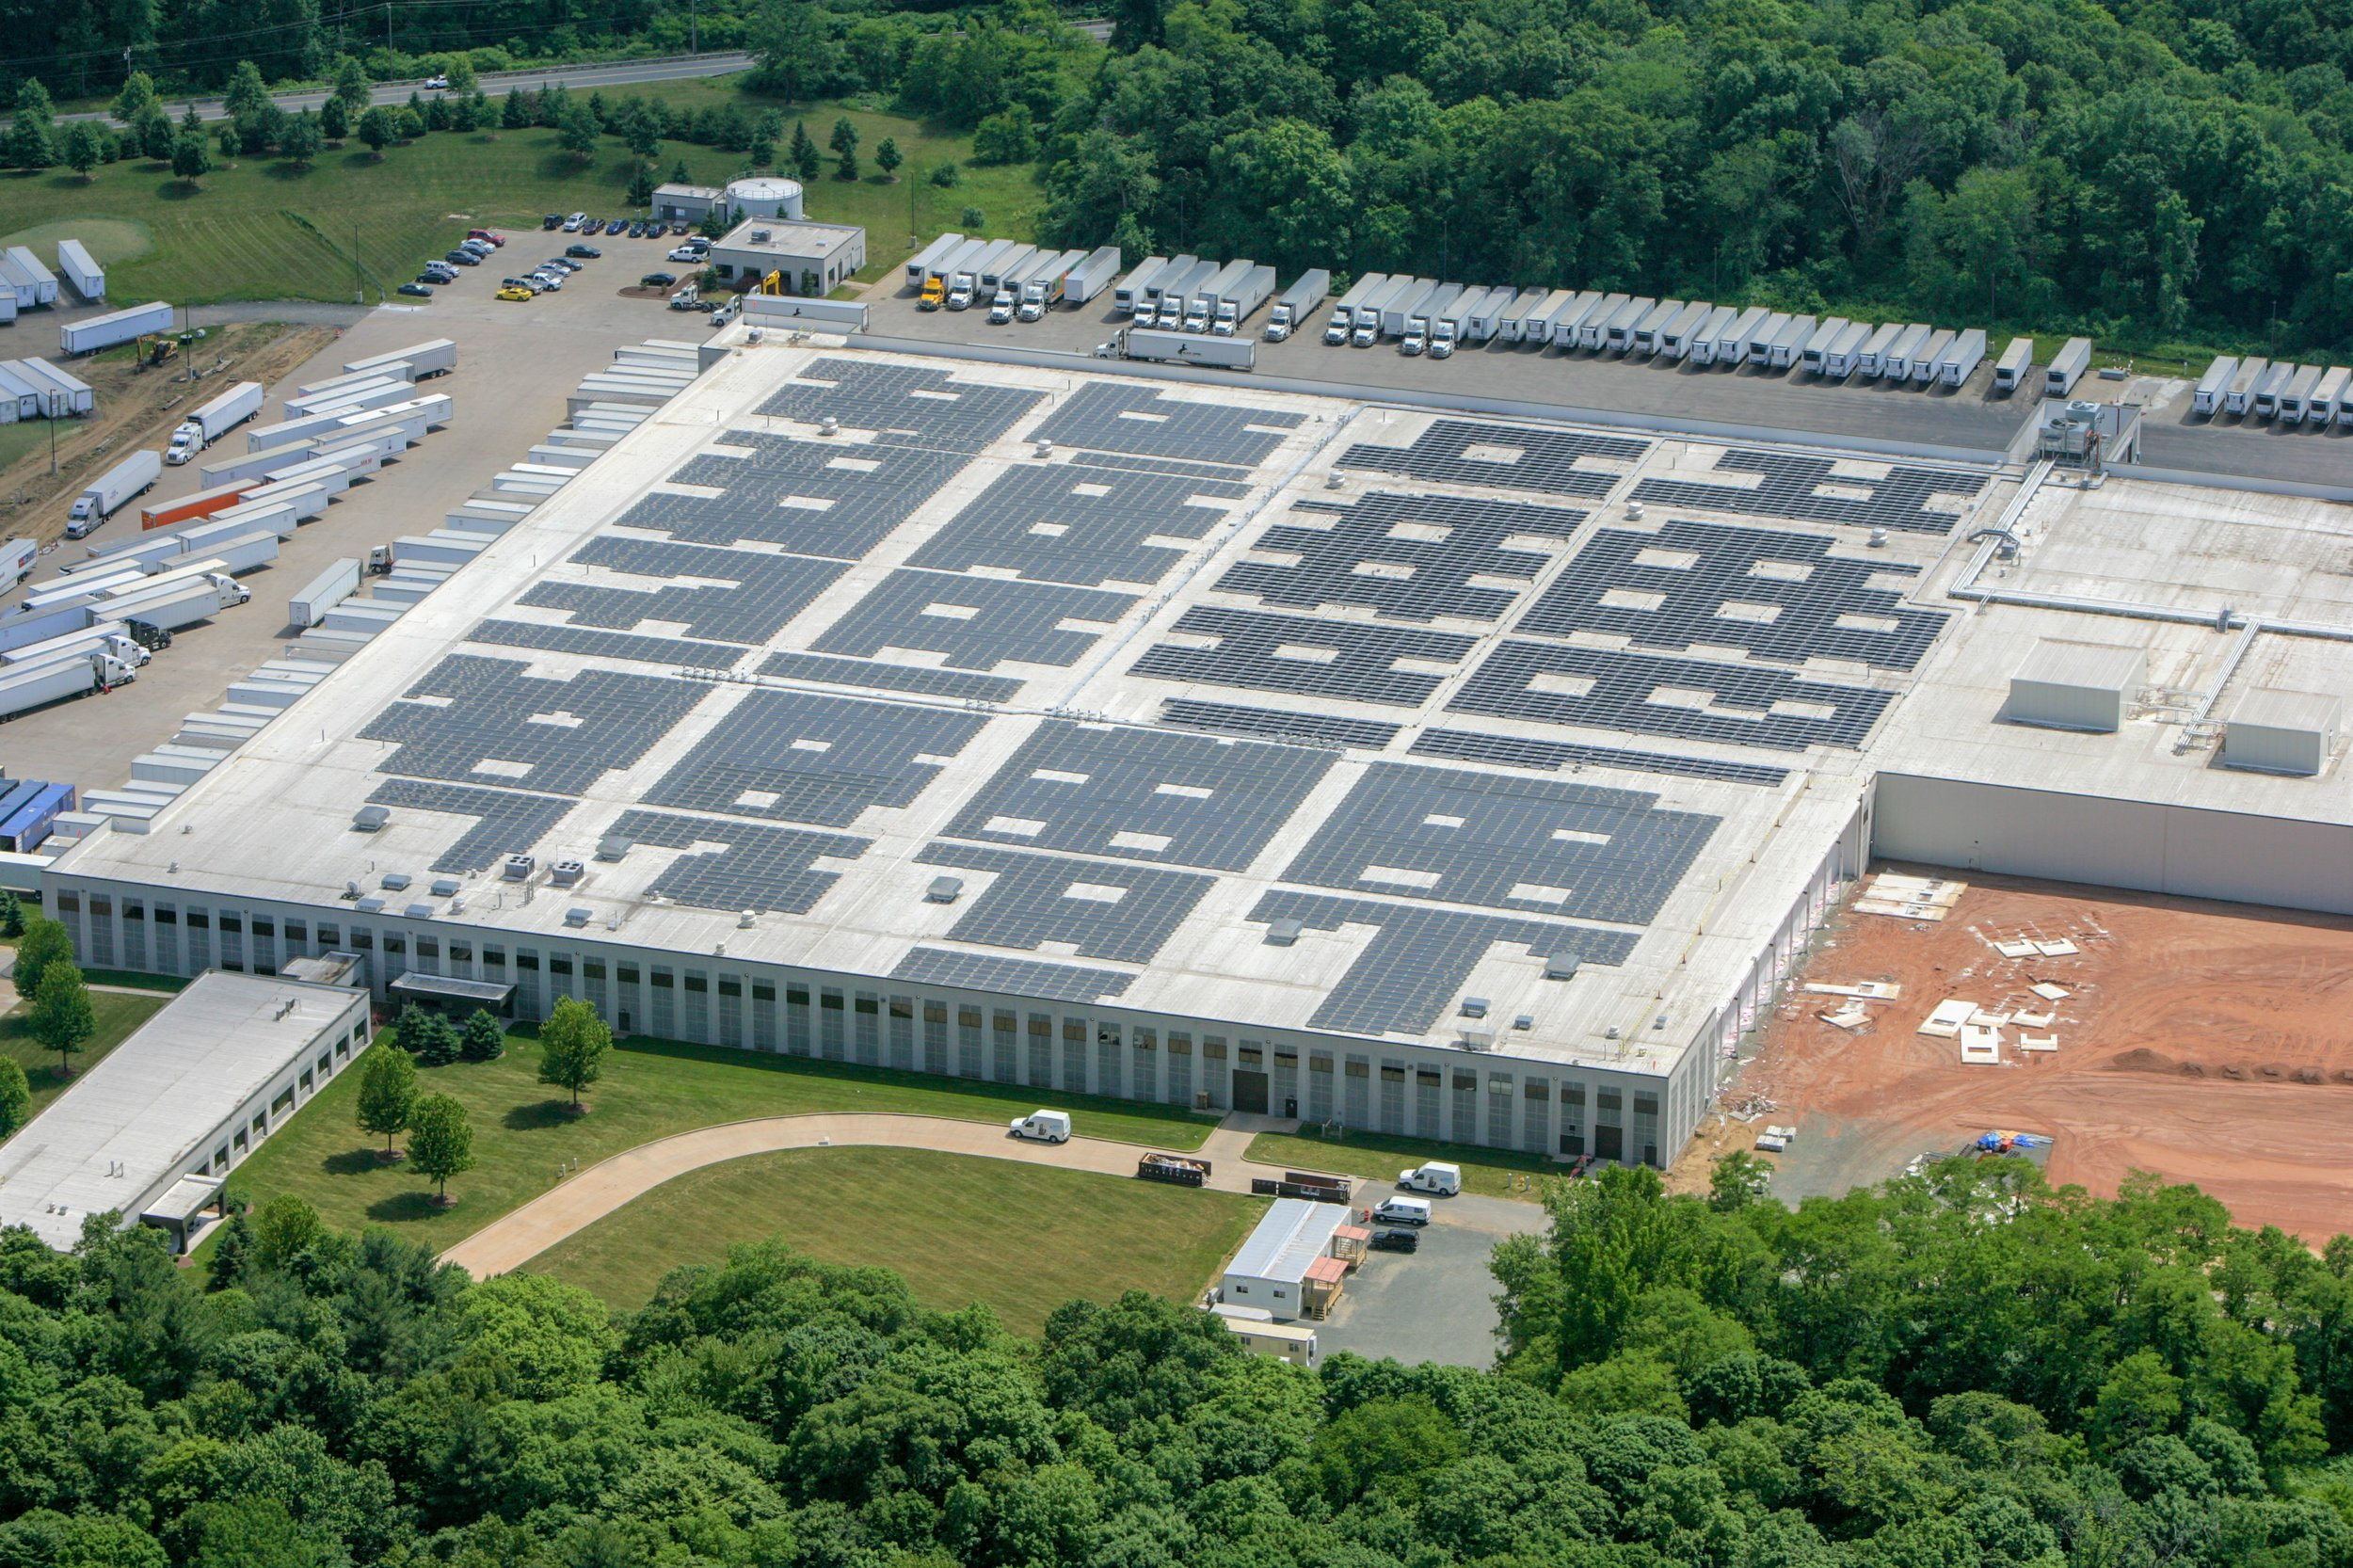 entersolar-aldi-connecticut.jpg